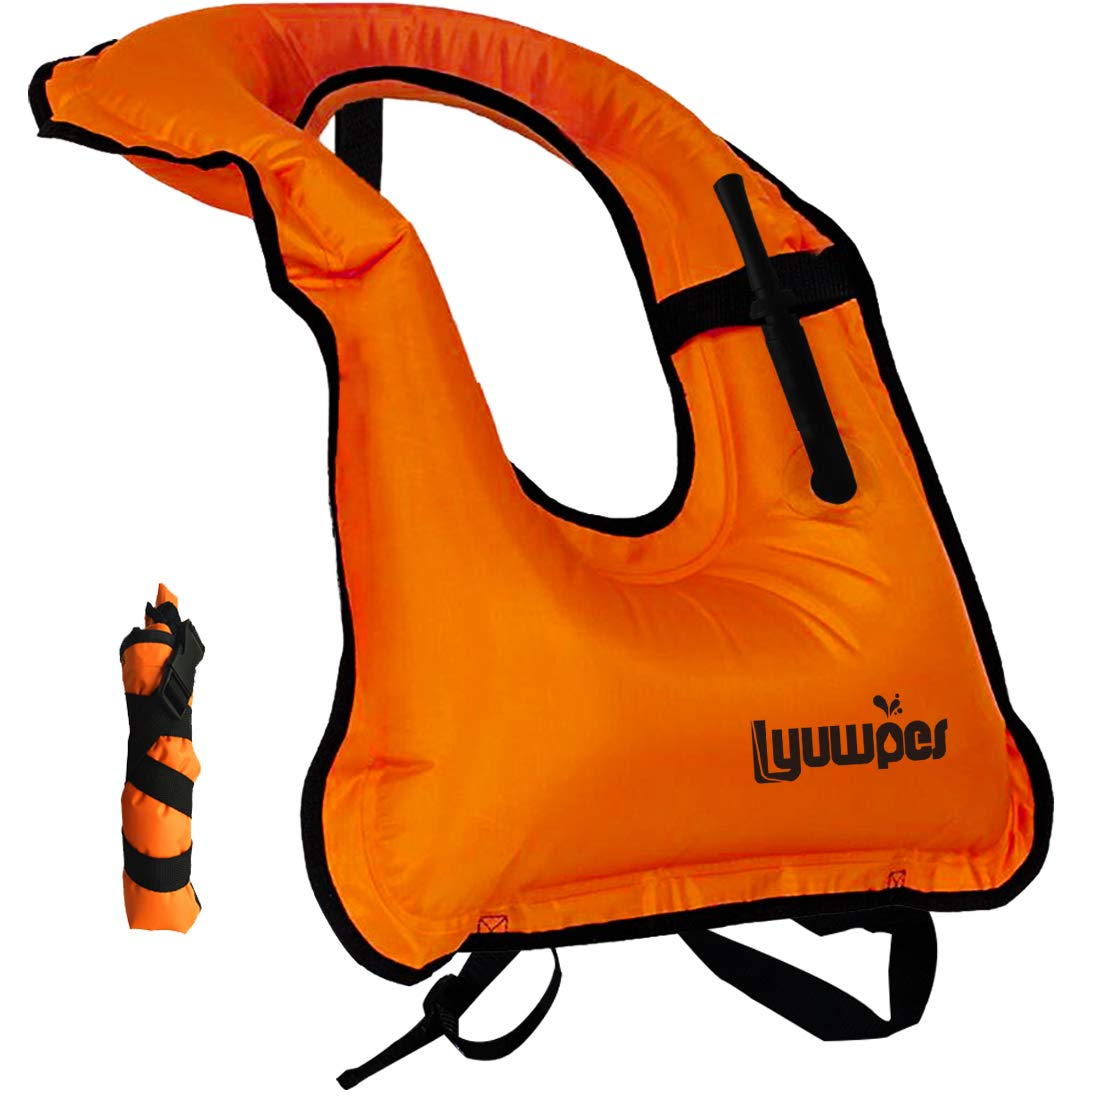 Lyuwpes Snorkel Vest Inflatable Adult Snorkeling Jackets Free Diving Swimming Safety Load Up to 220 Ibs Orange